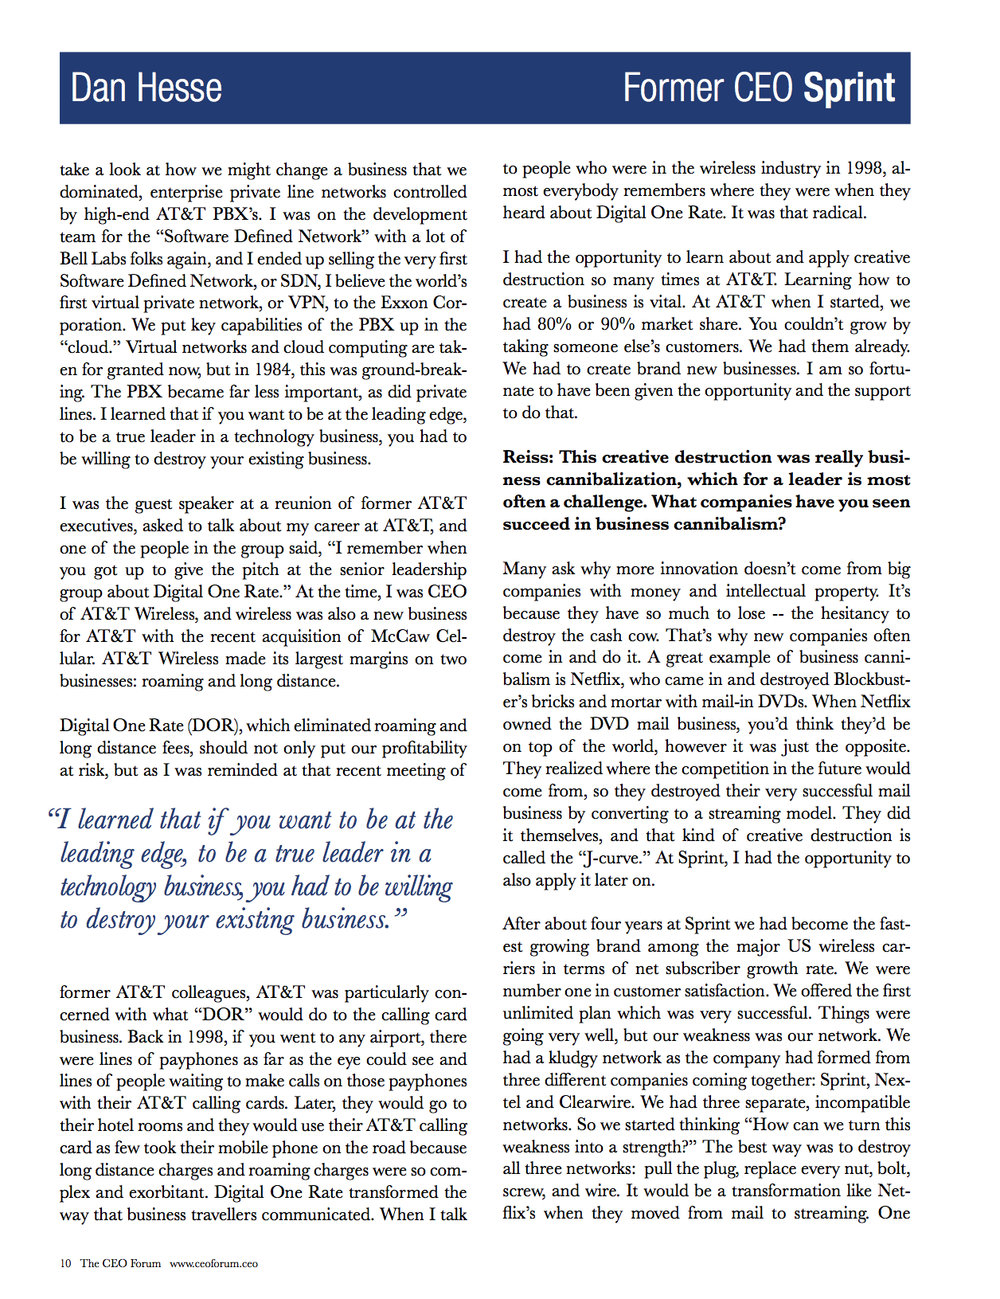 CEO Forum Magazine - Dan Hesse Page 10